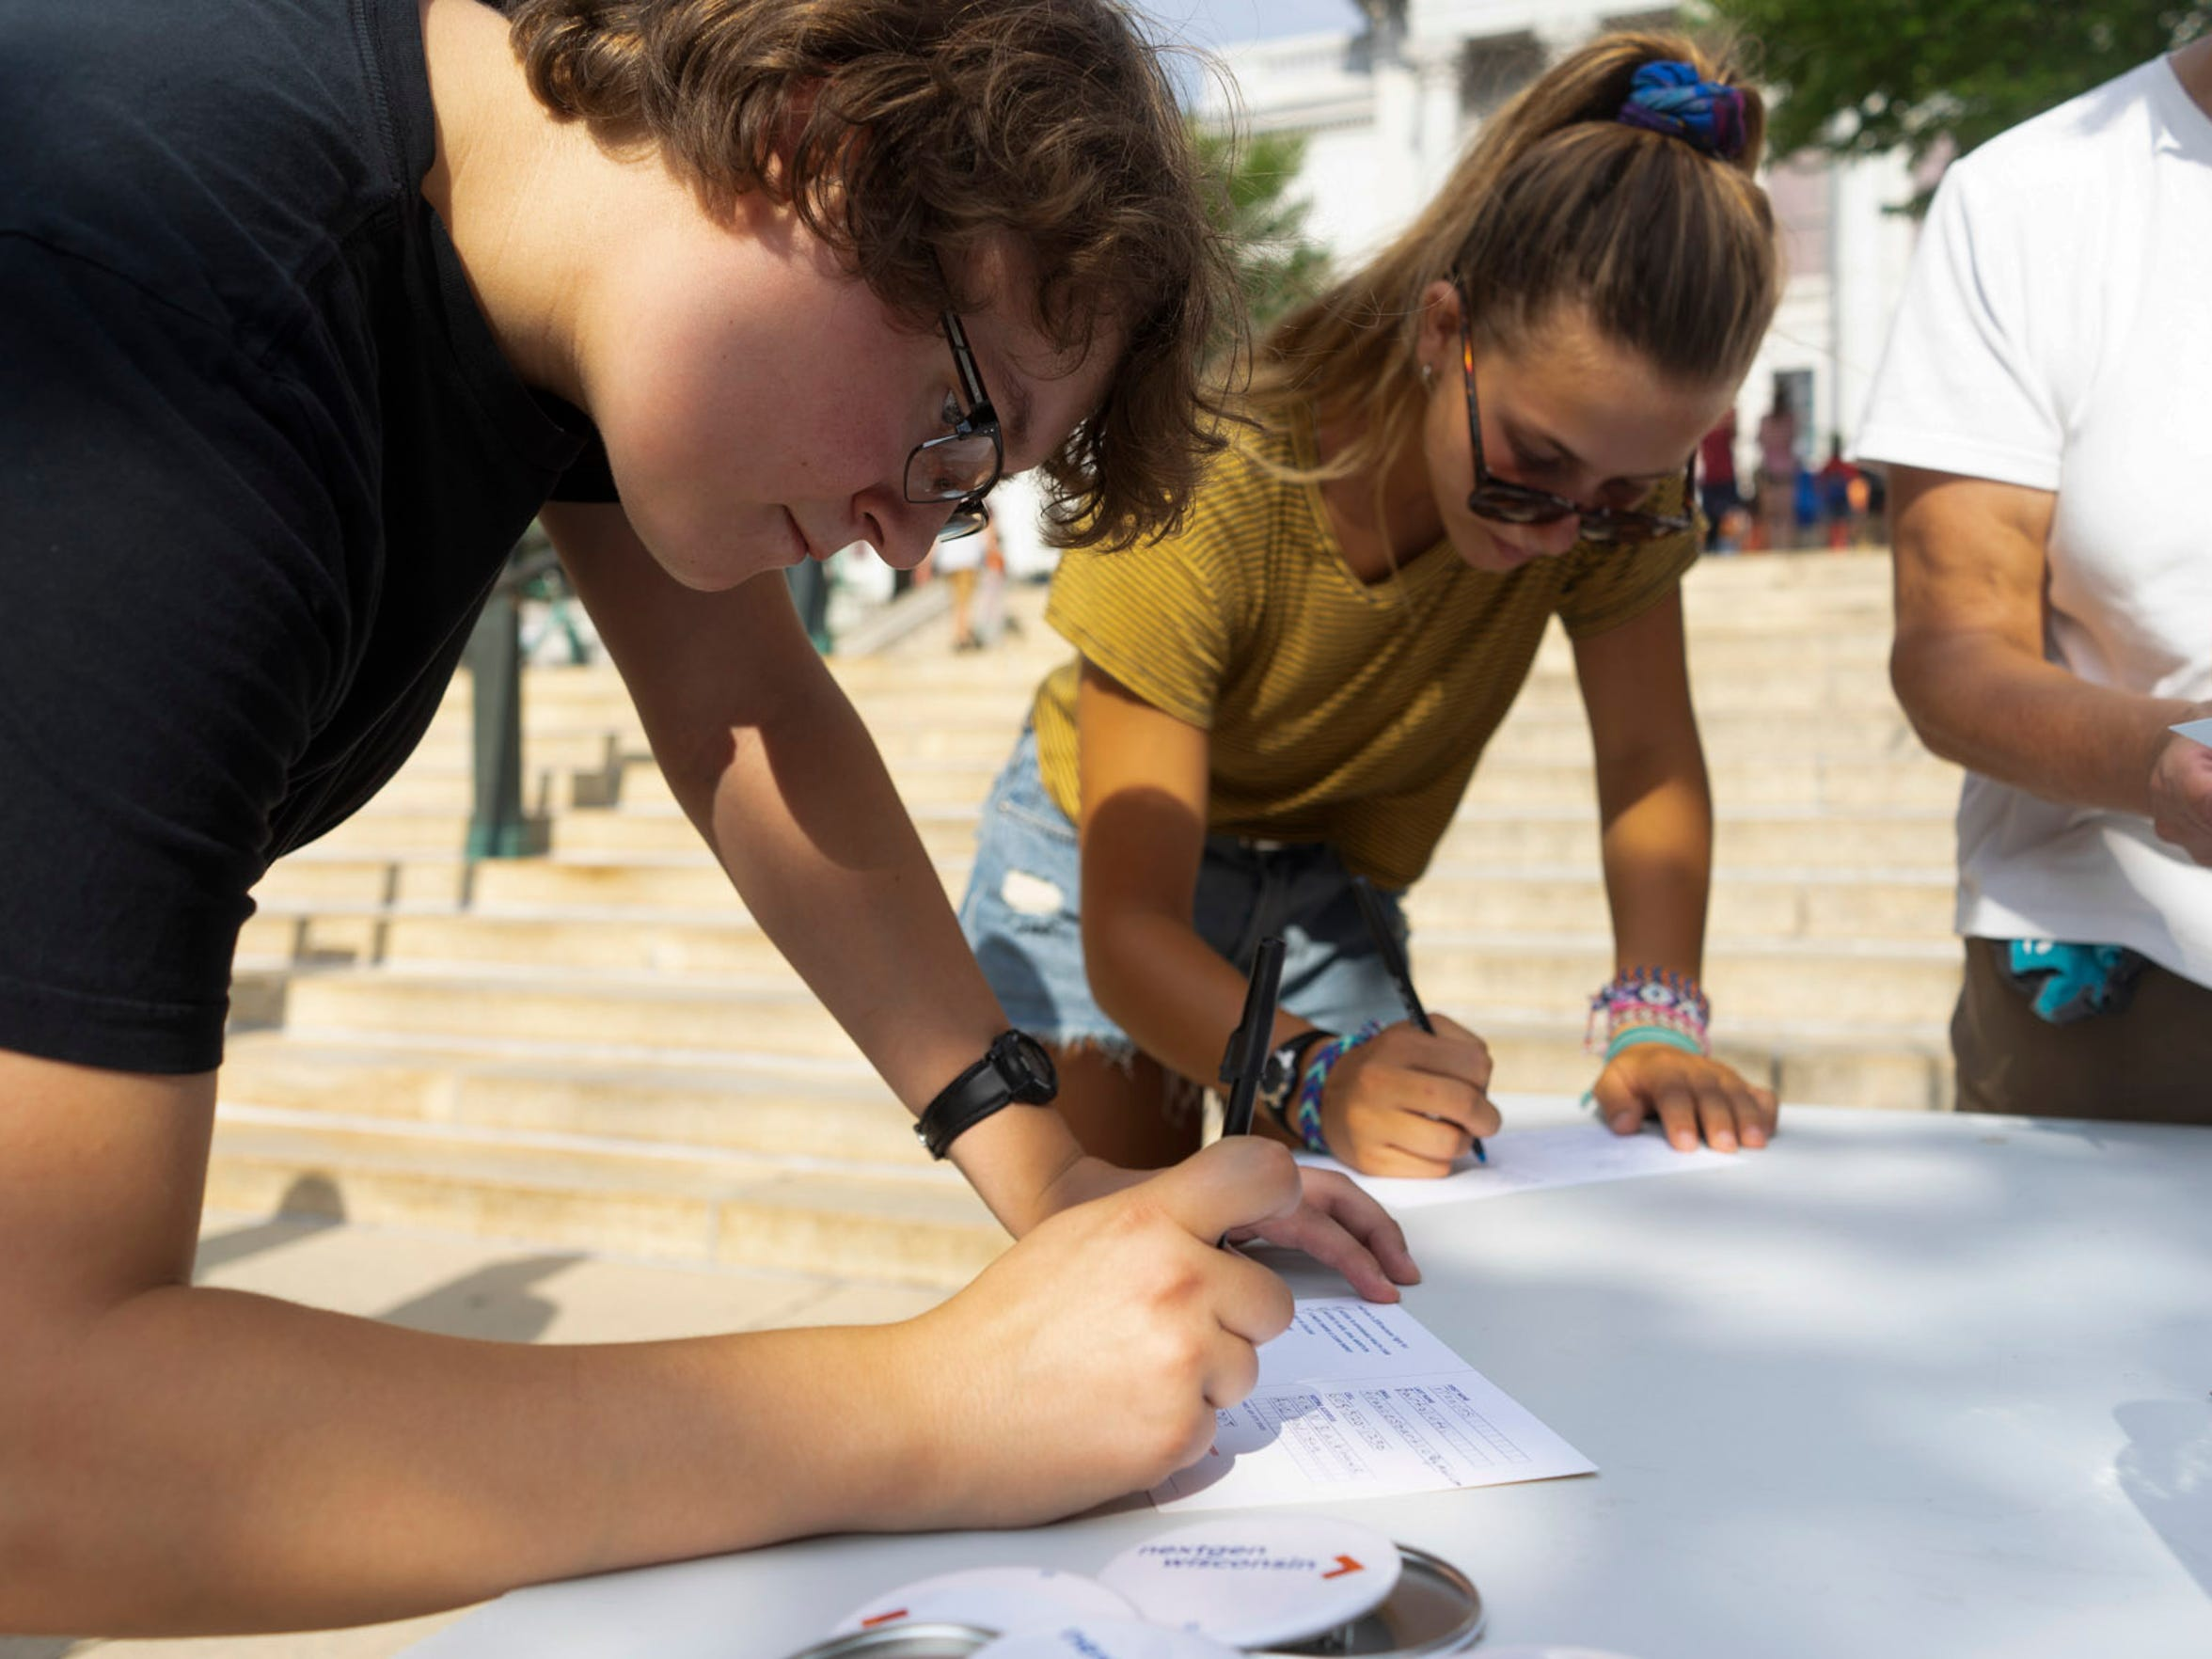 Frances Bartolutti, 19, at left, and Talia Glass pledge to vote at a table run by political advocacy group NextGen America at the Wisconsin State Capitol on Aug. 4. Bartolutti says she was looking forward to voting in her first Senate and gubernatorial race. A government study found that voter ID requirements such as Wisconsin's can lead to lower voter turnout among young people.